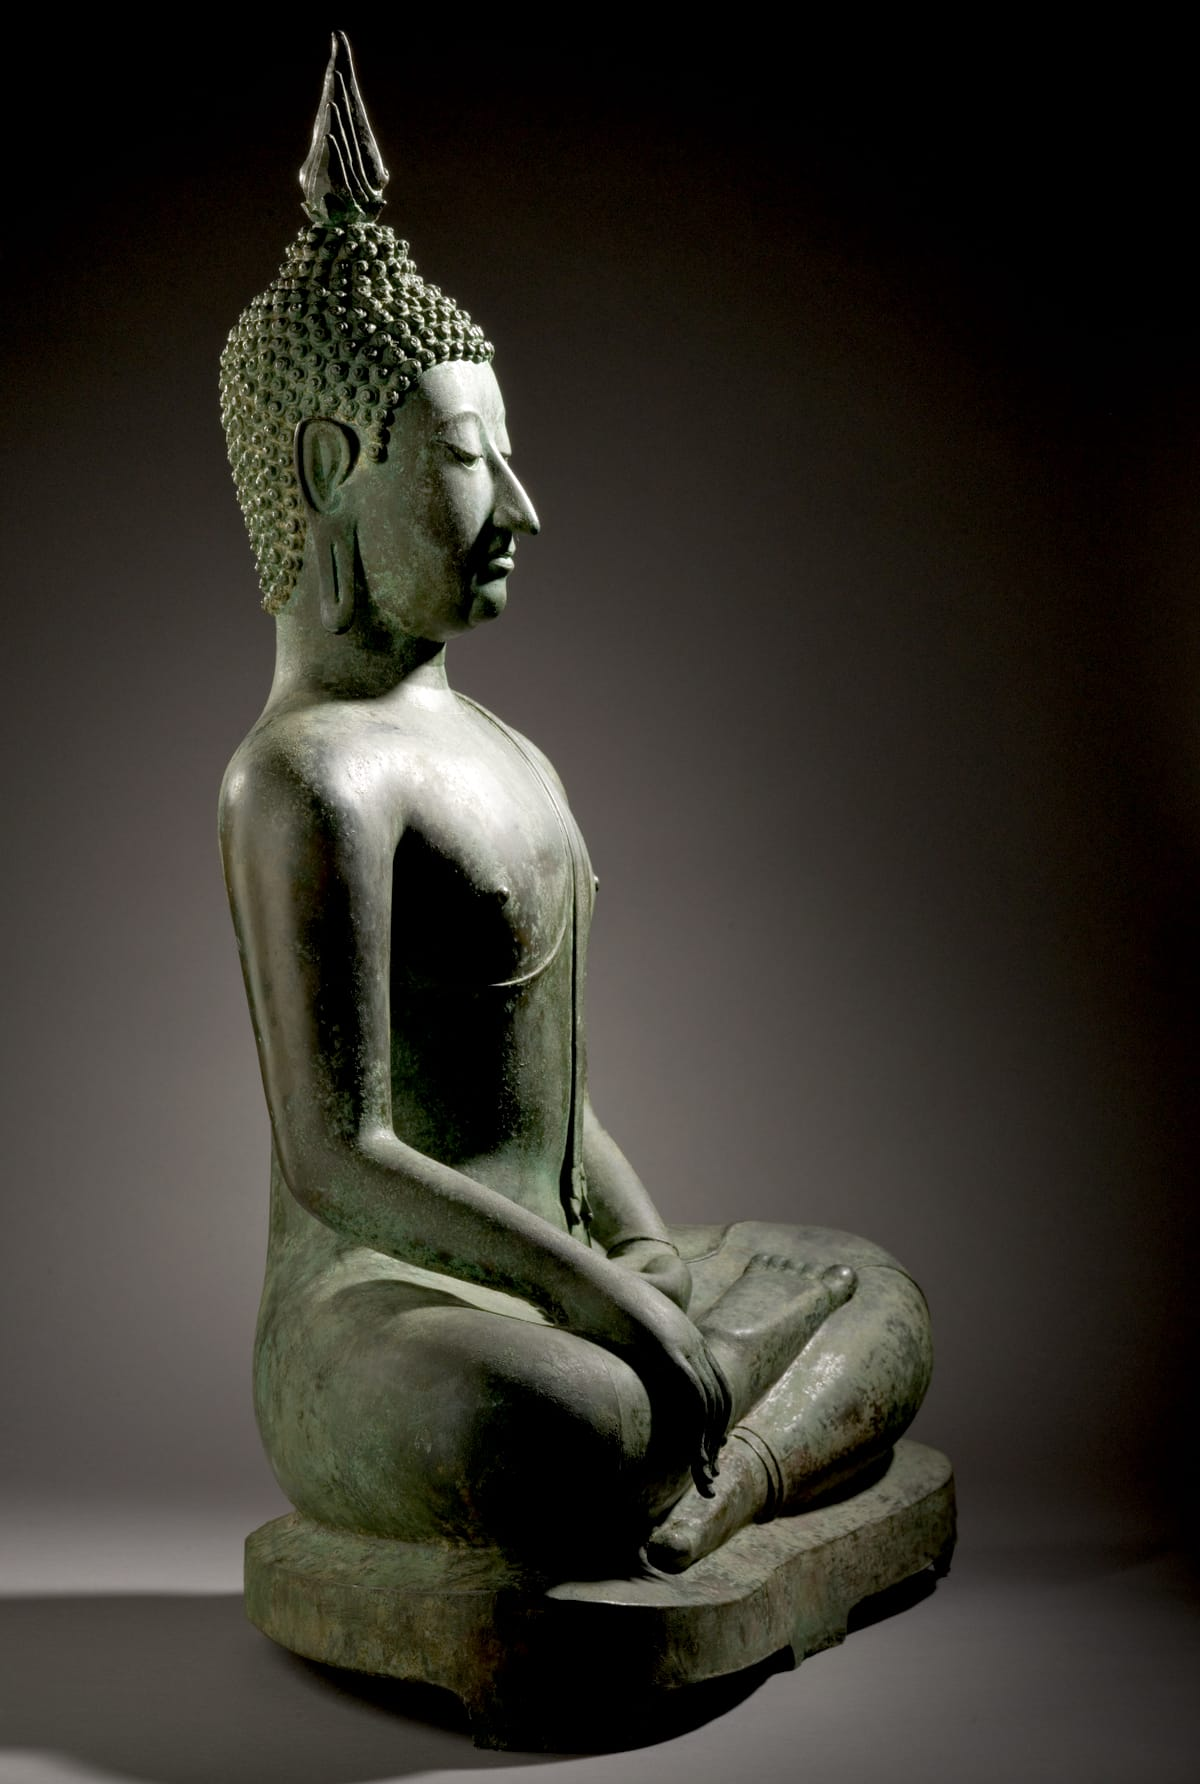 Head and shoulder of a statue of the Buddha in meditation.